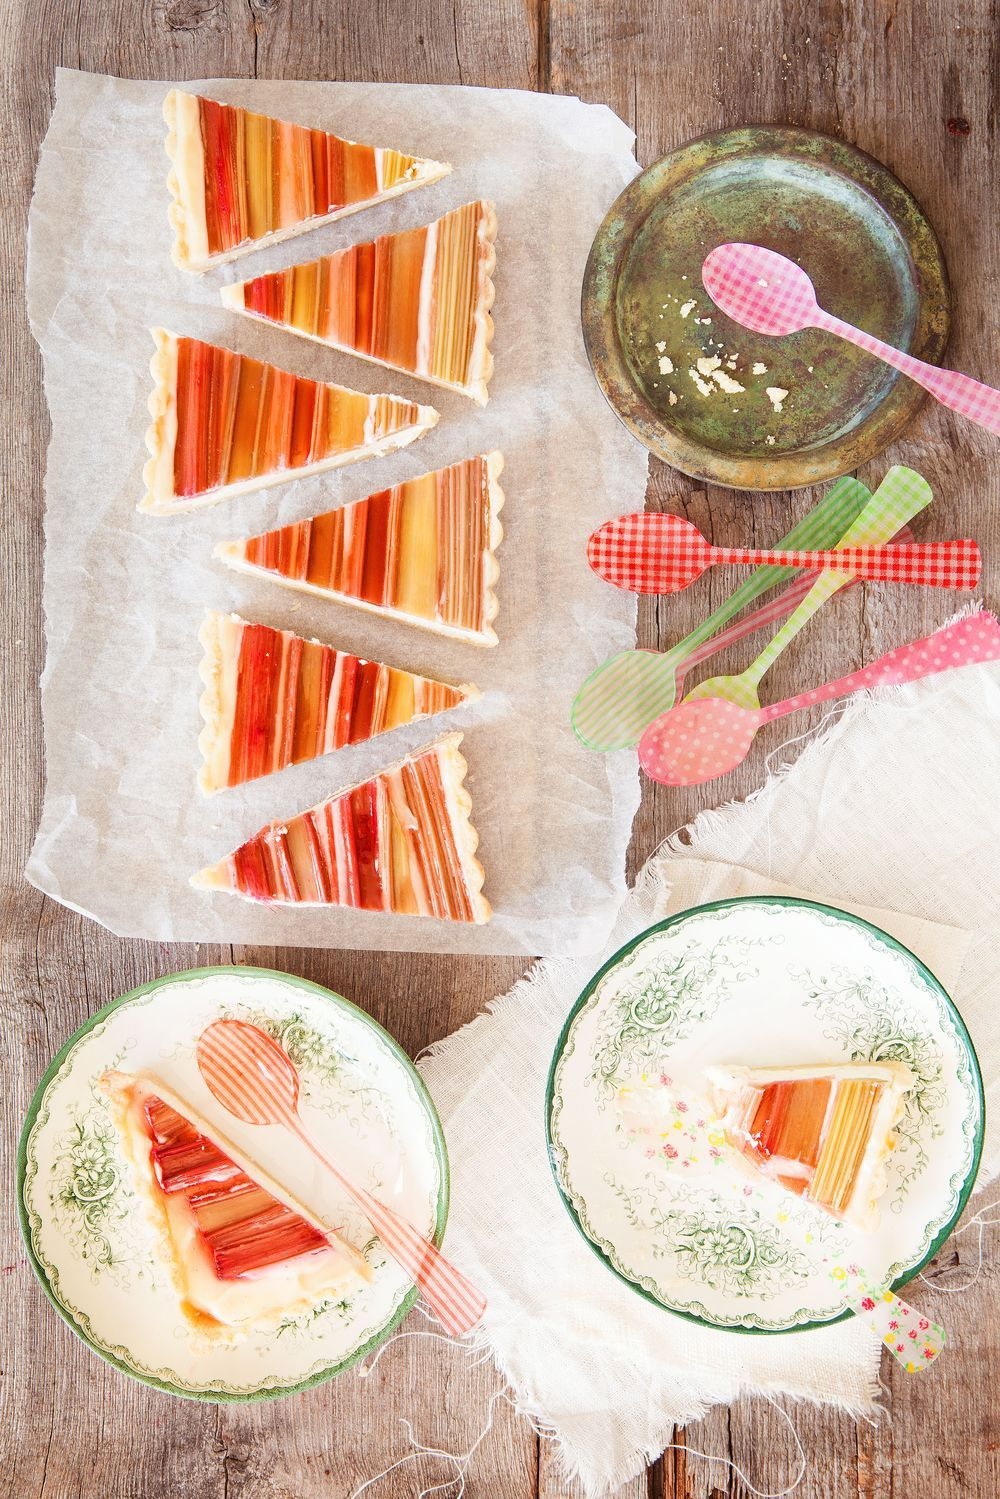 cheesecake rhubarb cheesecake cheesecake strawberry cheesecake tart ...